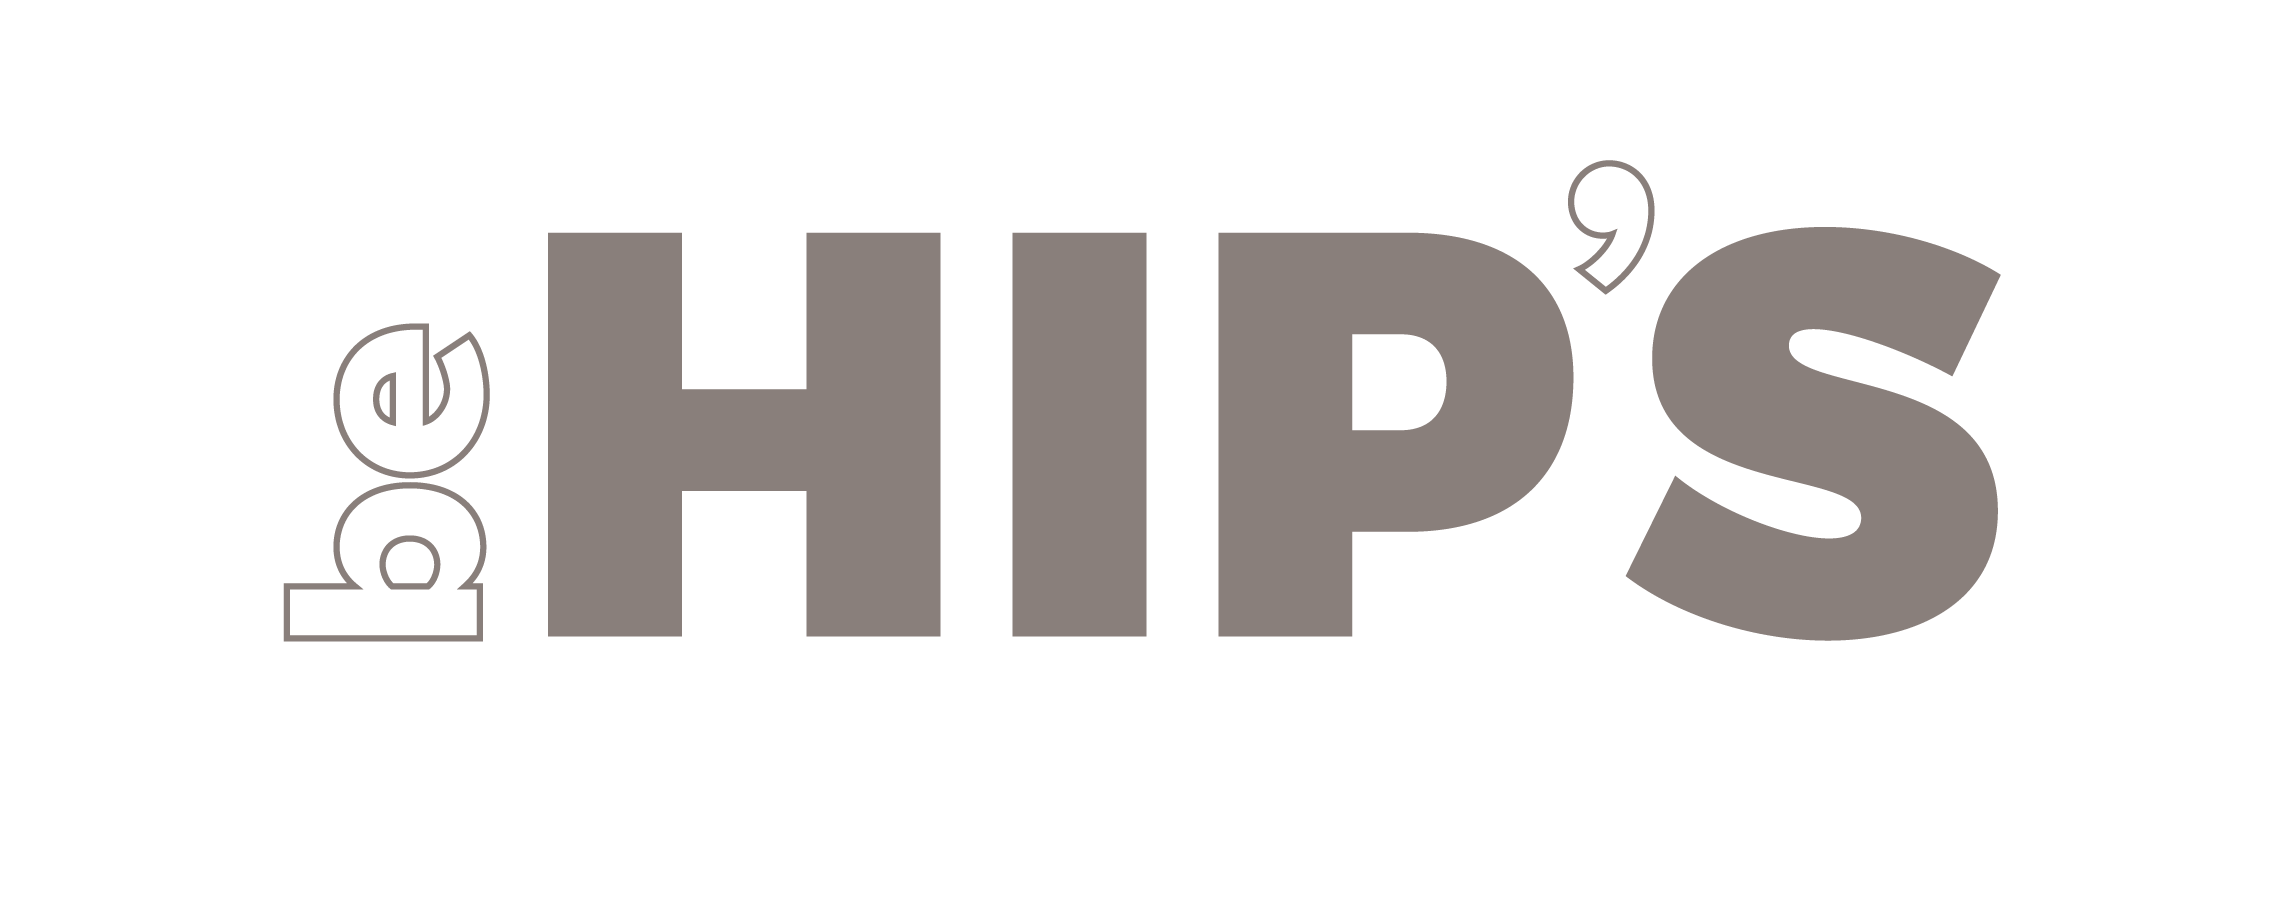 HIPs Mucho + que coaching – hola@behips.com